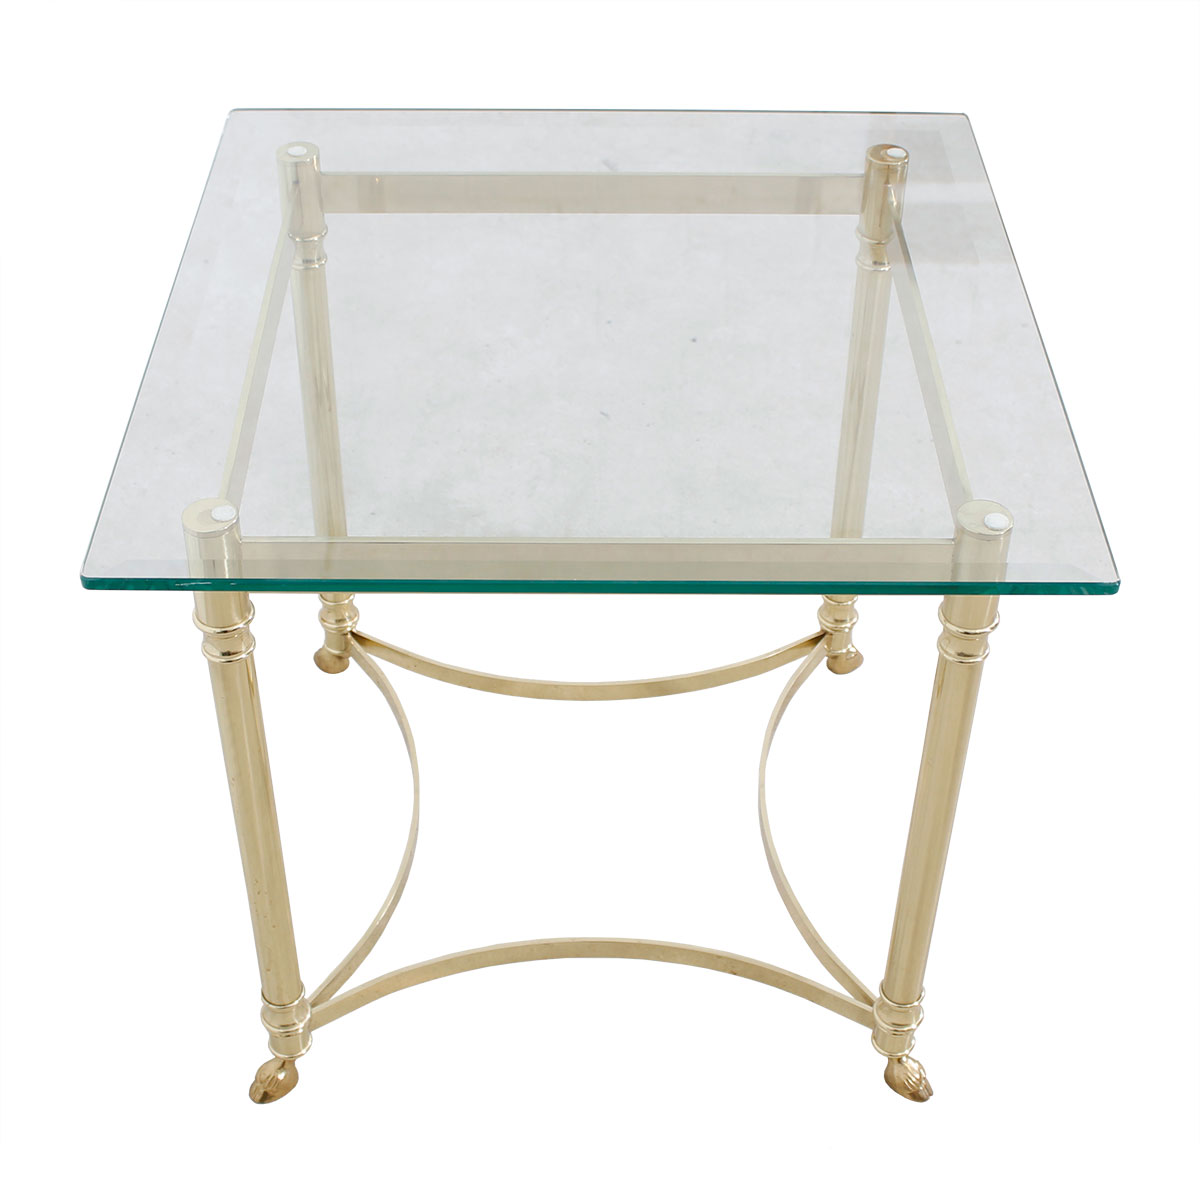 22.5″ Small Square LaBarge Brass & Glass Coffee Table